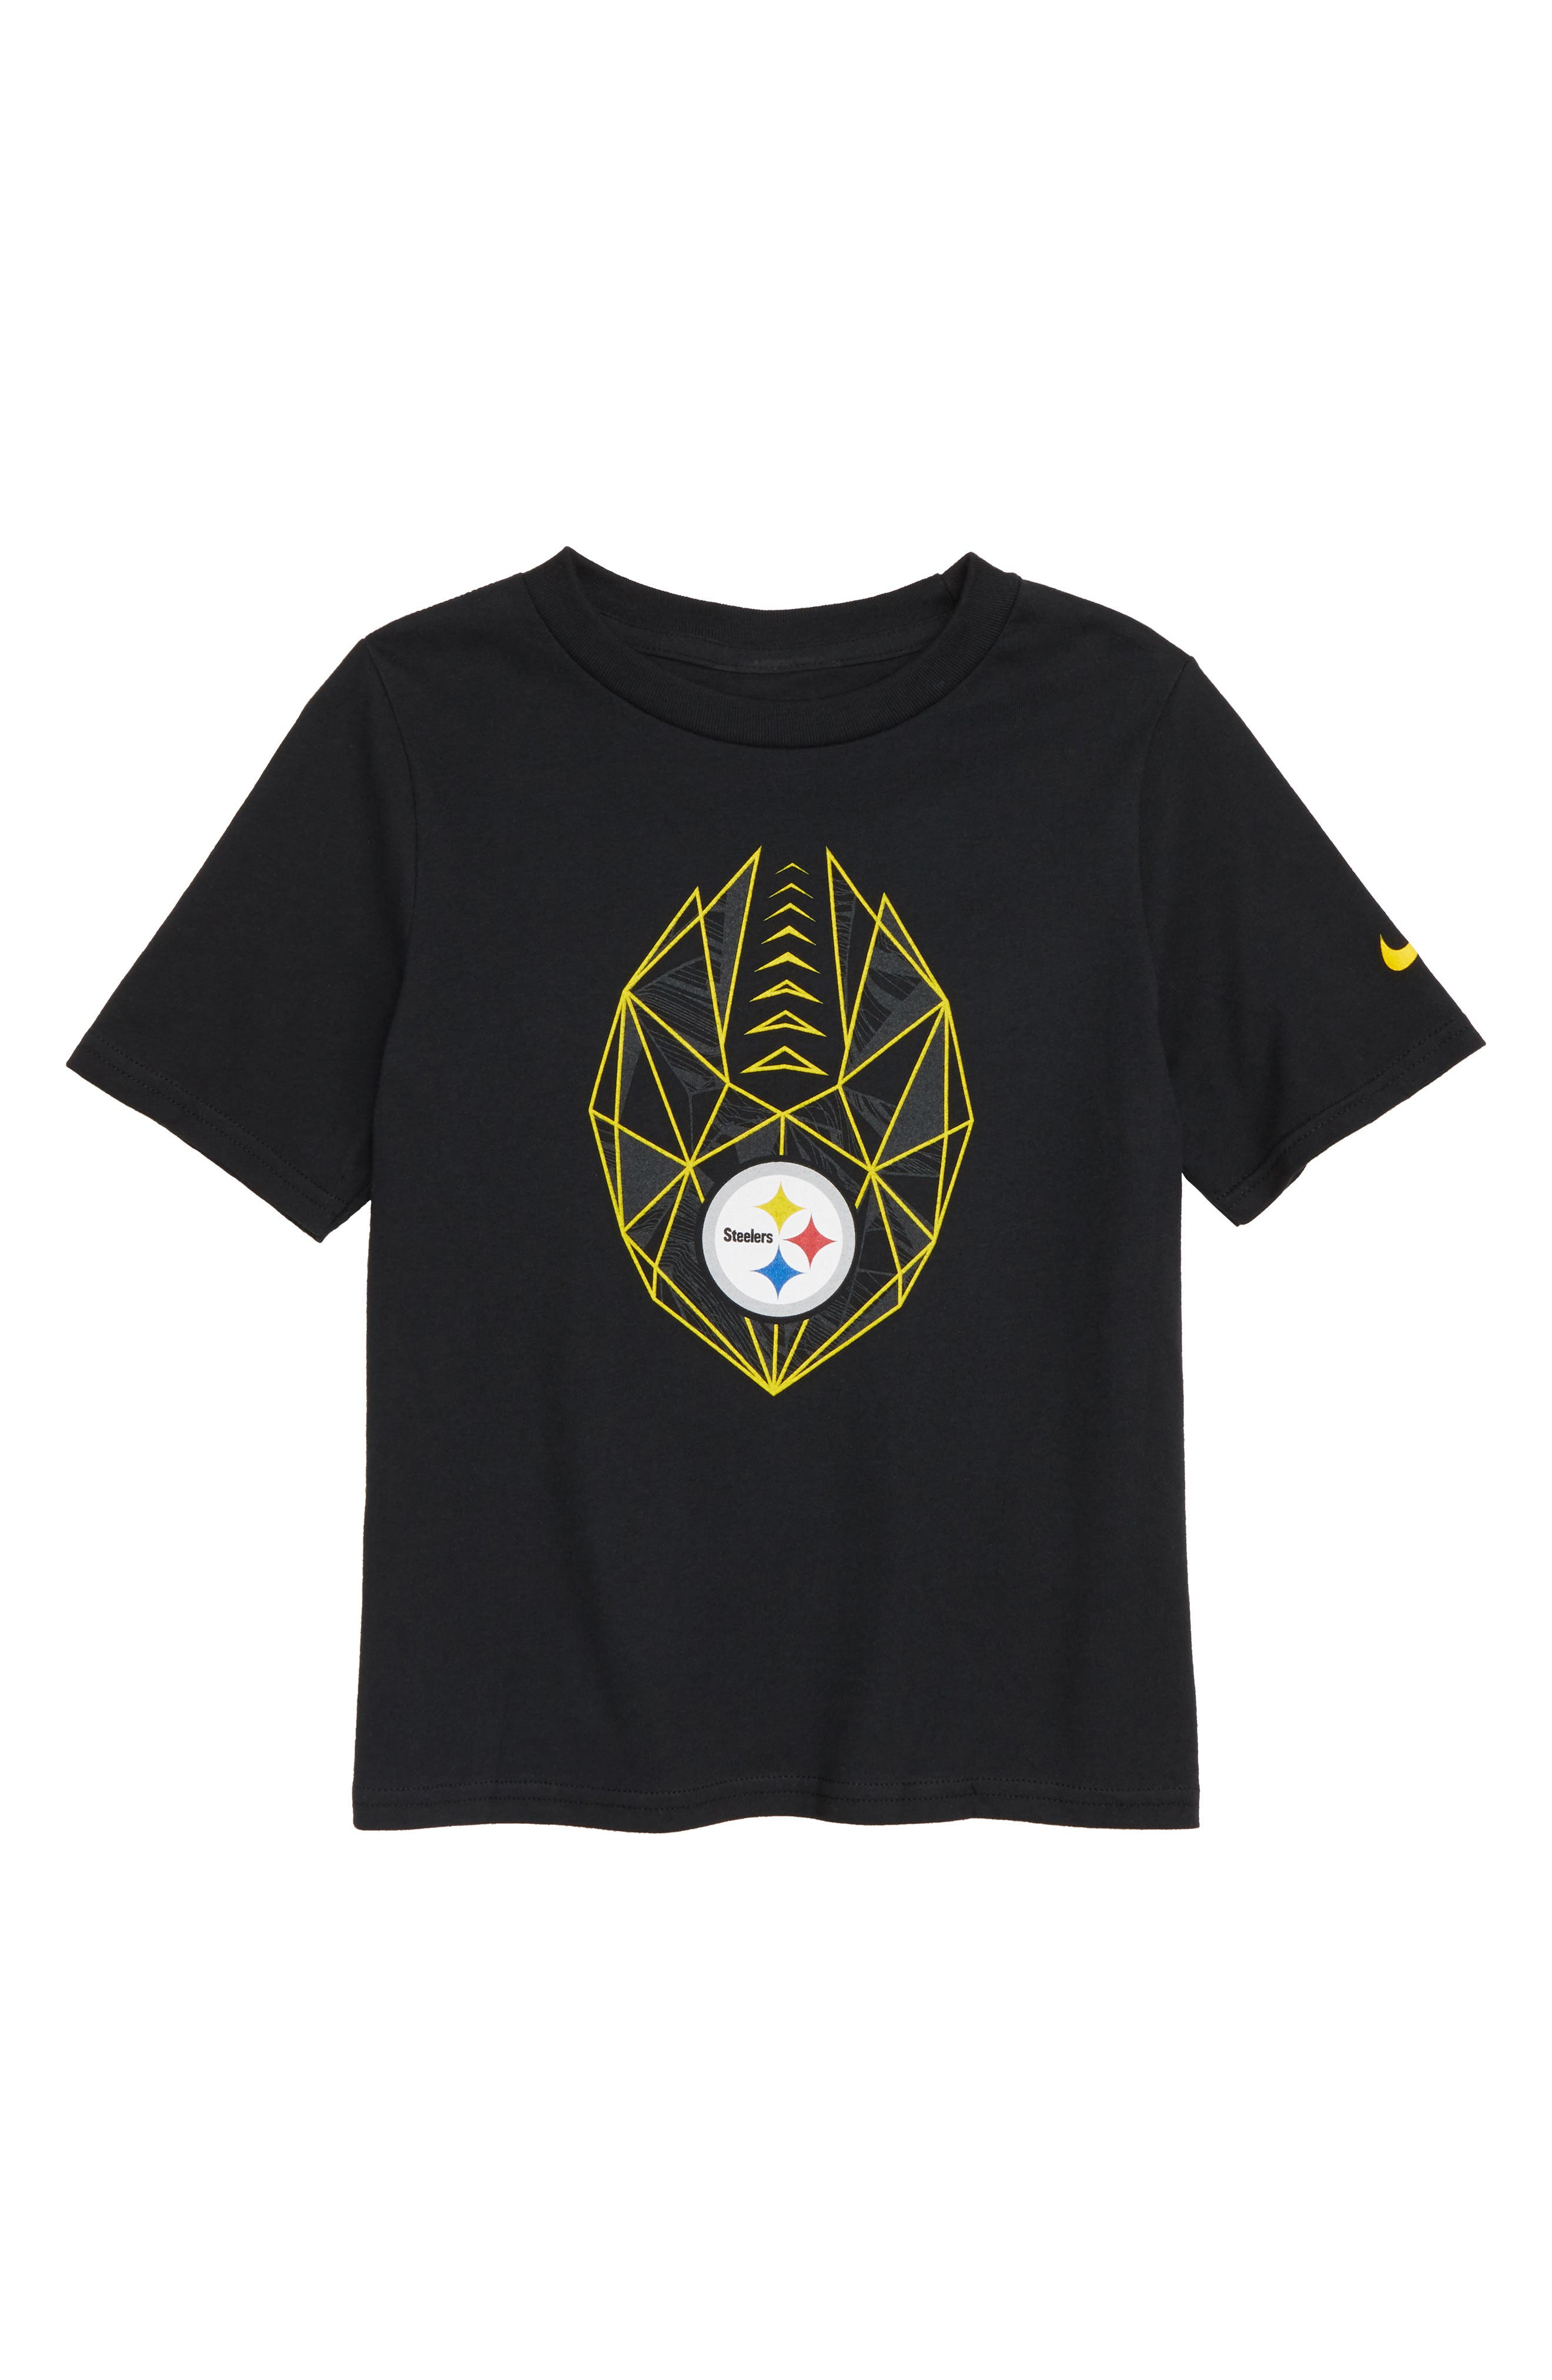 NFL Pittsburgh Steelers Graphic T-Shirt,                             Main thumbnail 1, color,                             BLACK